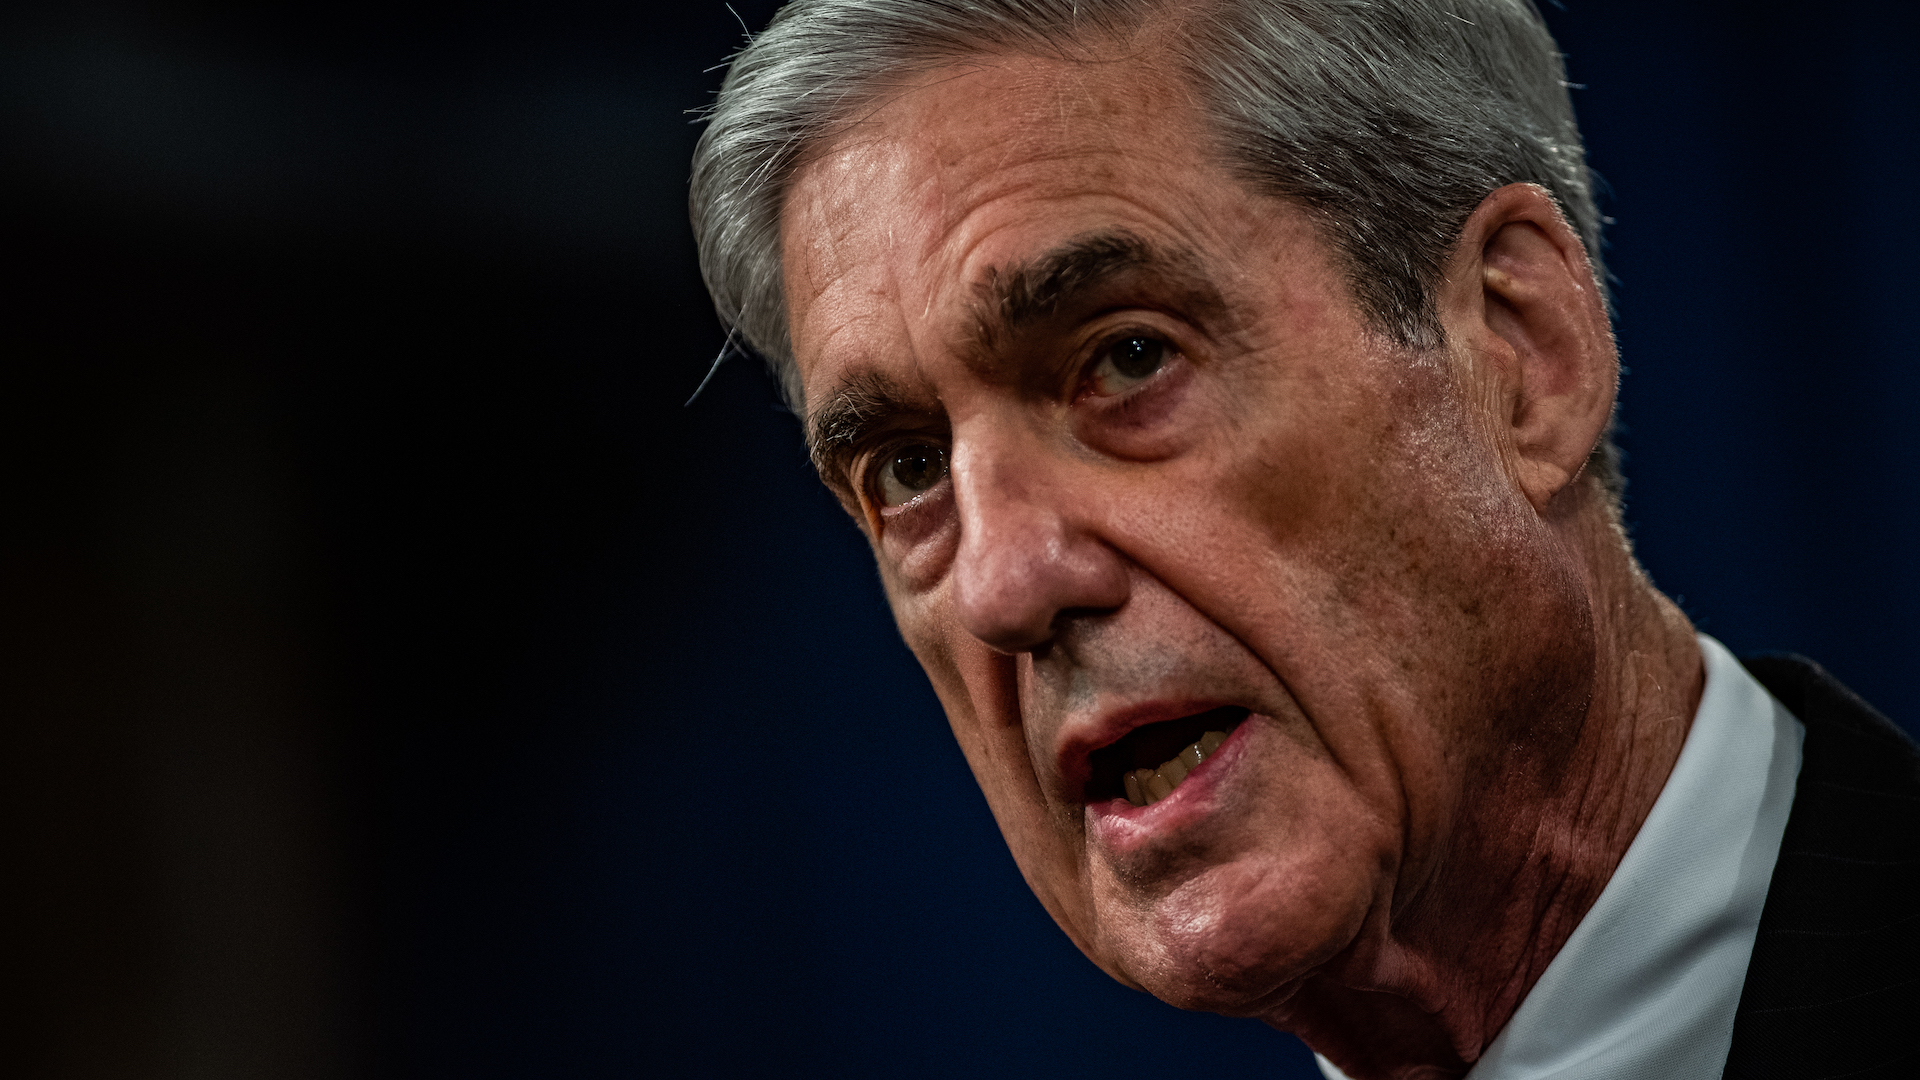 Democrats hope Mueller gives credence to their claim of an unlawful Trump